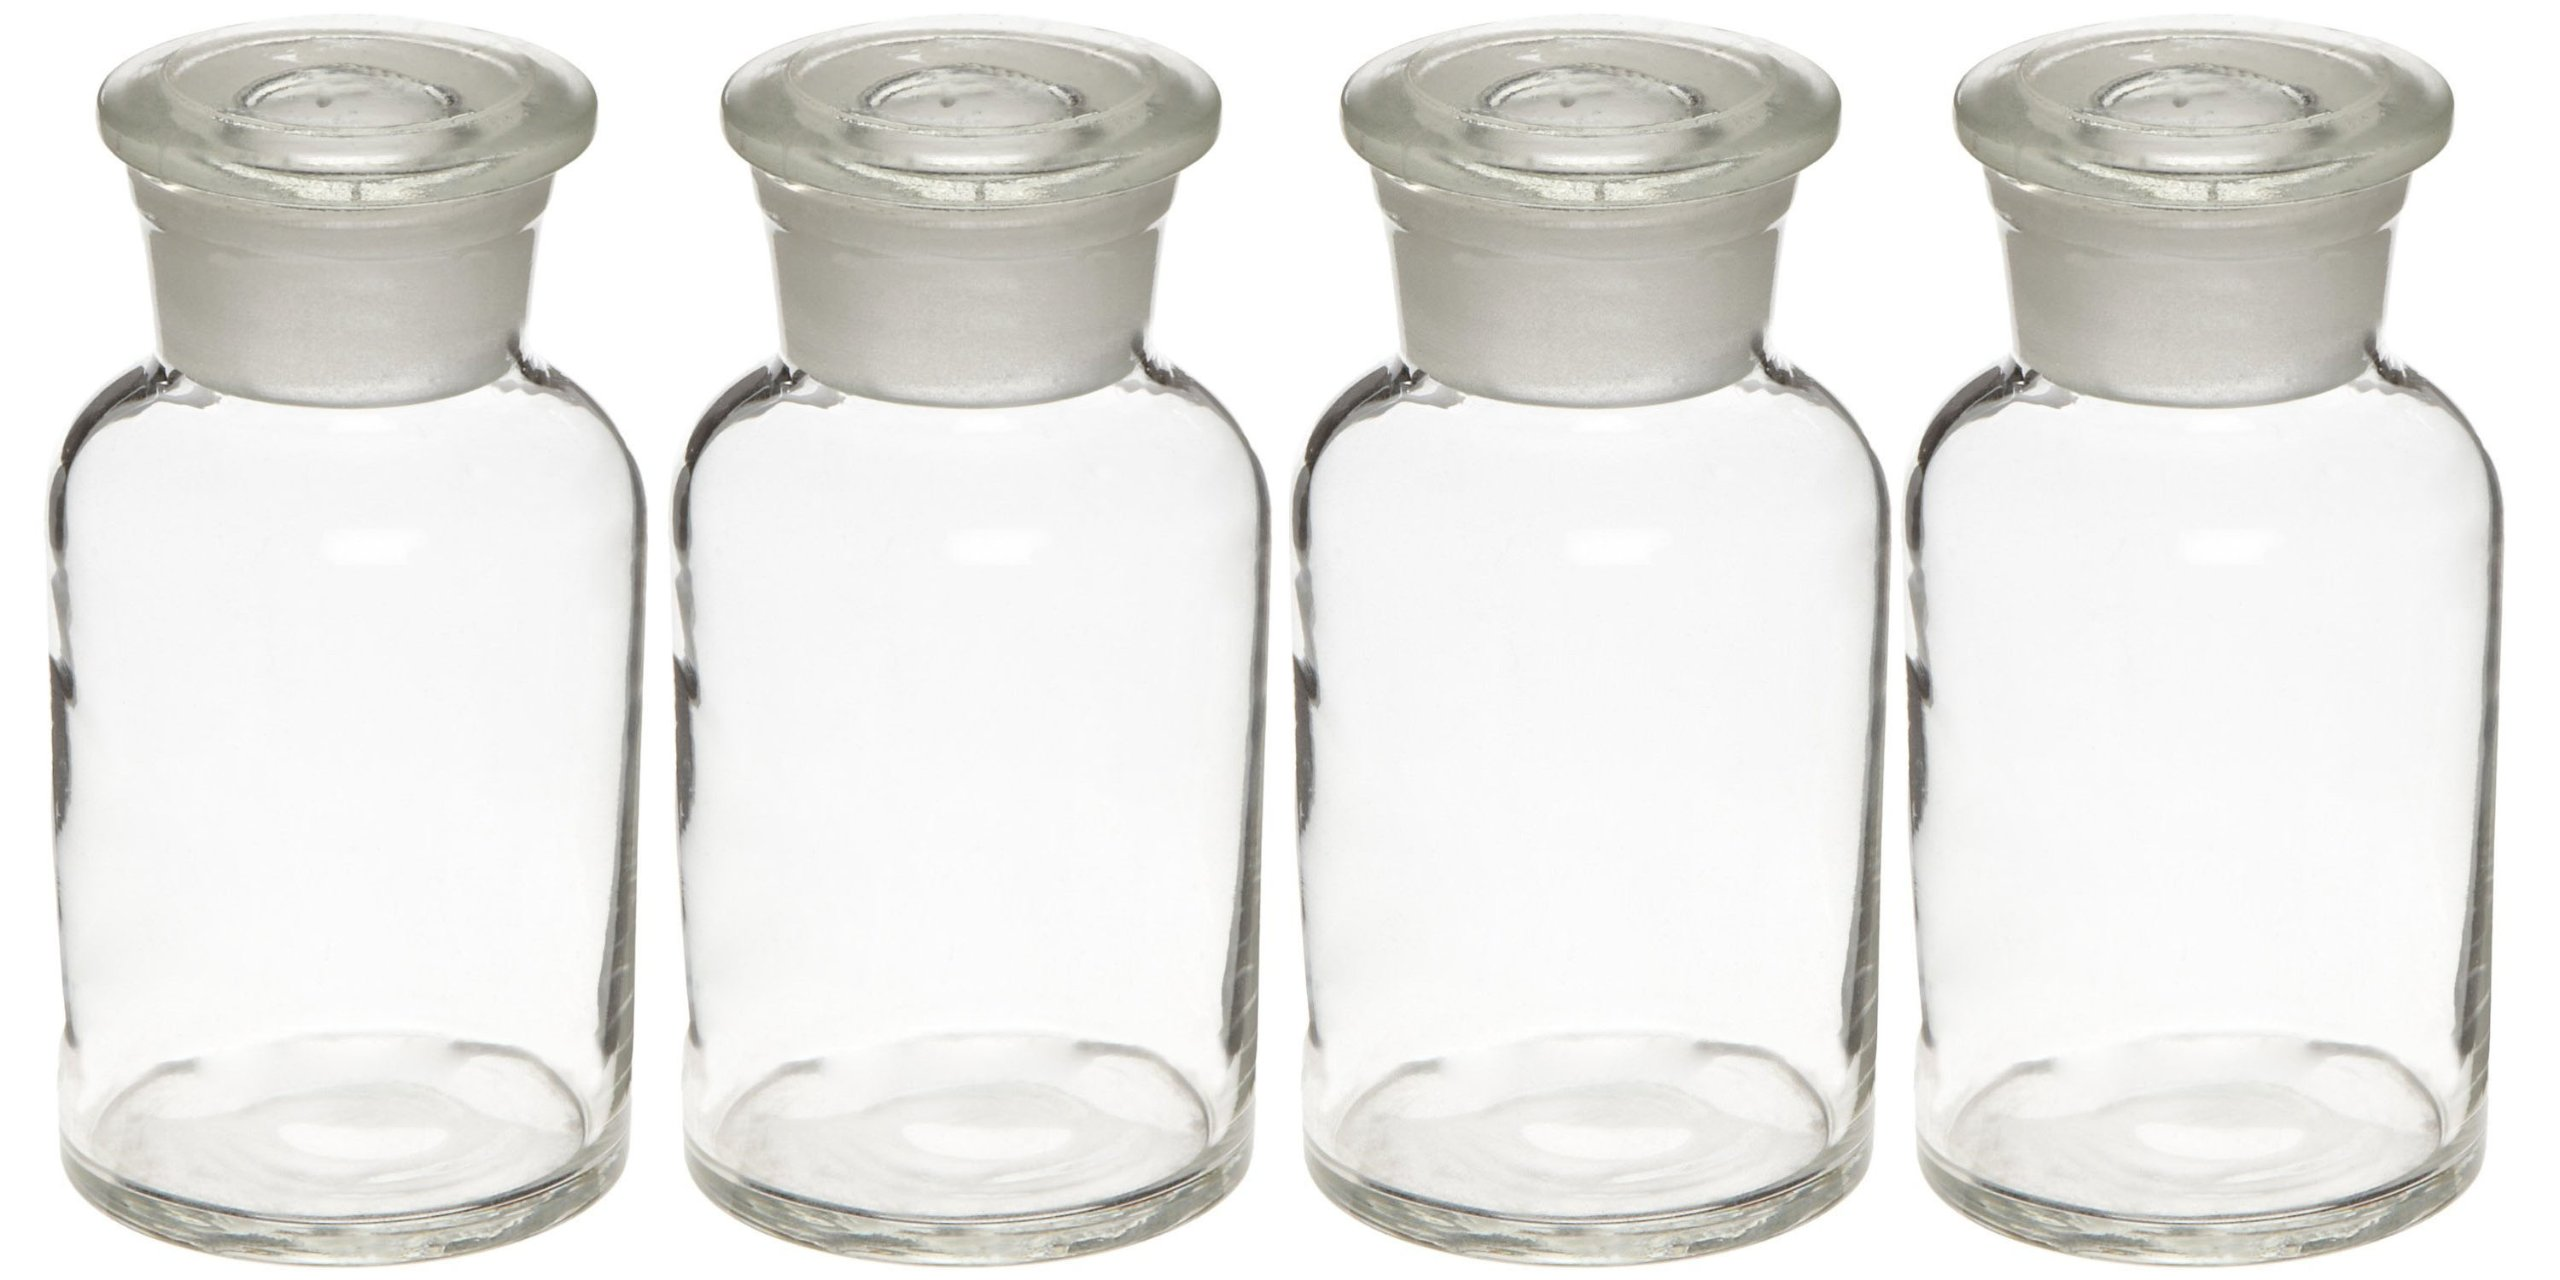 Set of 4 250ml (8.5oz) Glass Reagent Bottles - Wide Mouth Jars